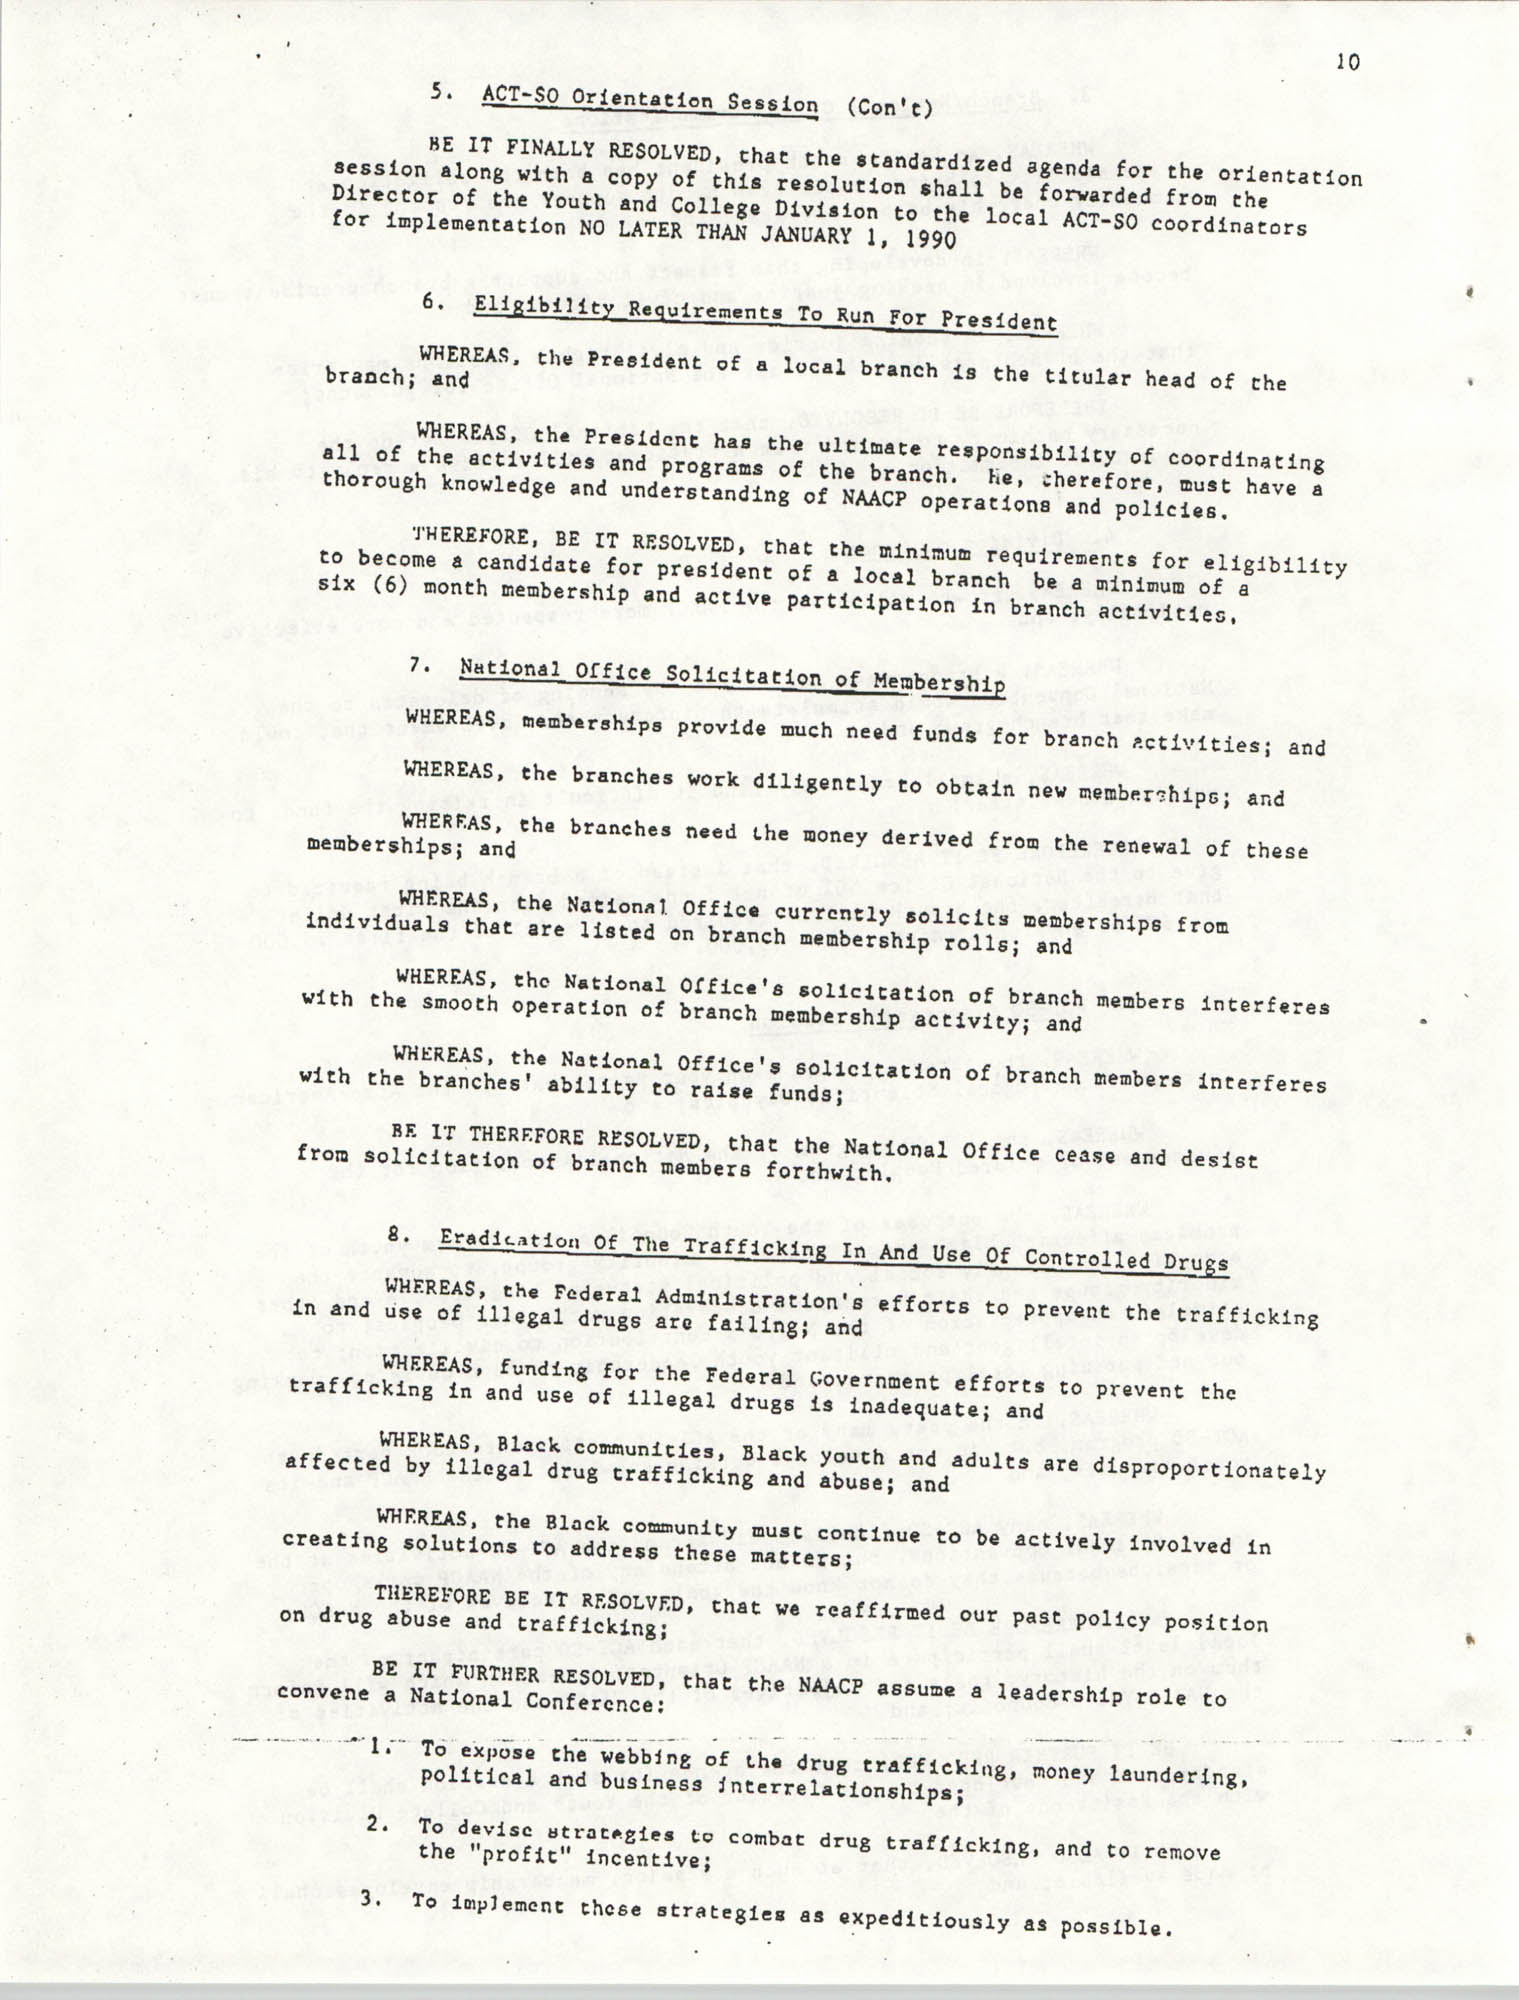 Resolutions Submitted Under Article X, Section 2 of the Constitution of the NAACP, Page 10